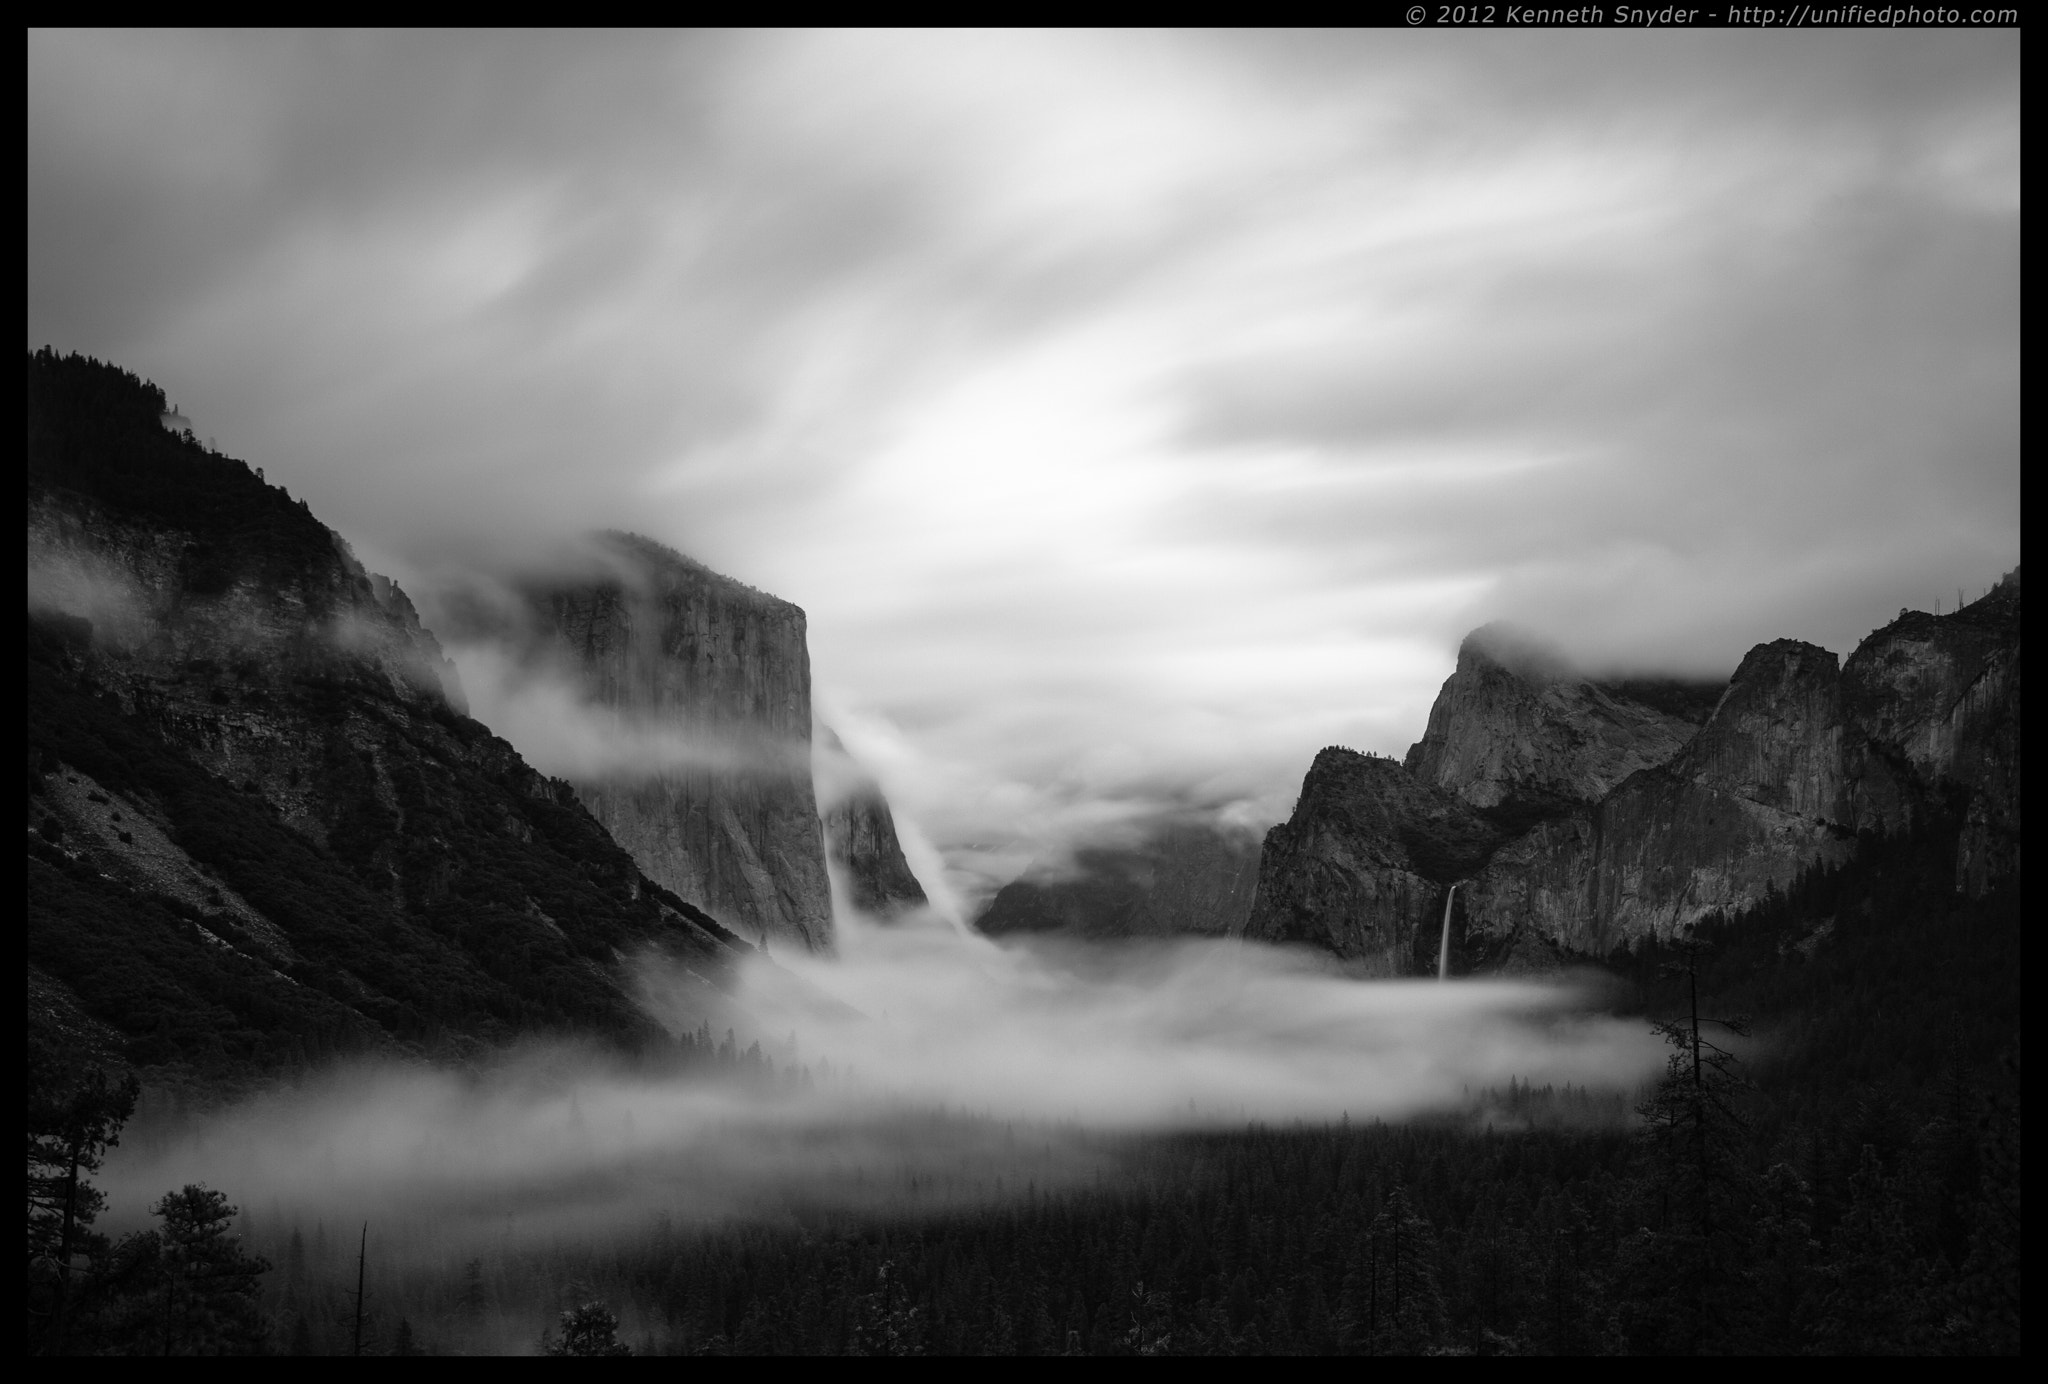 Photograph Fade to Black by Kenneth Snyder on 500px